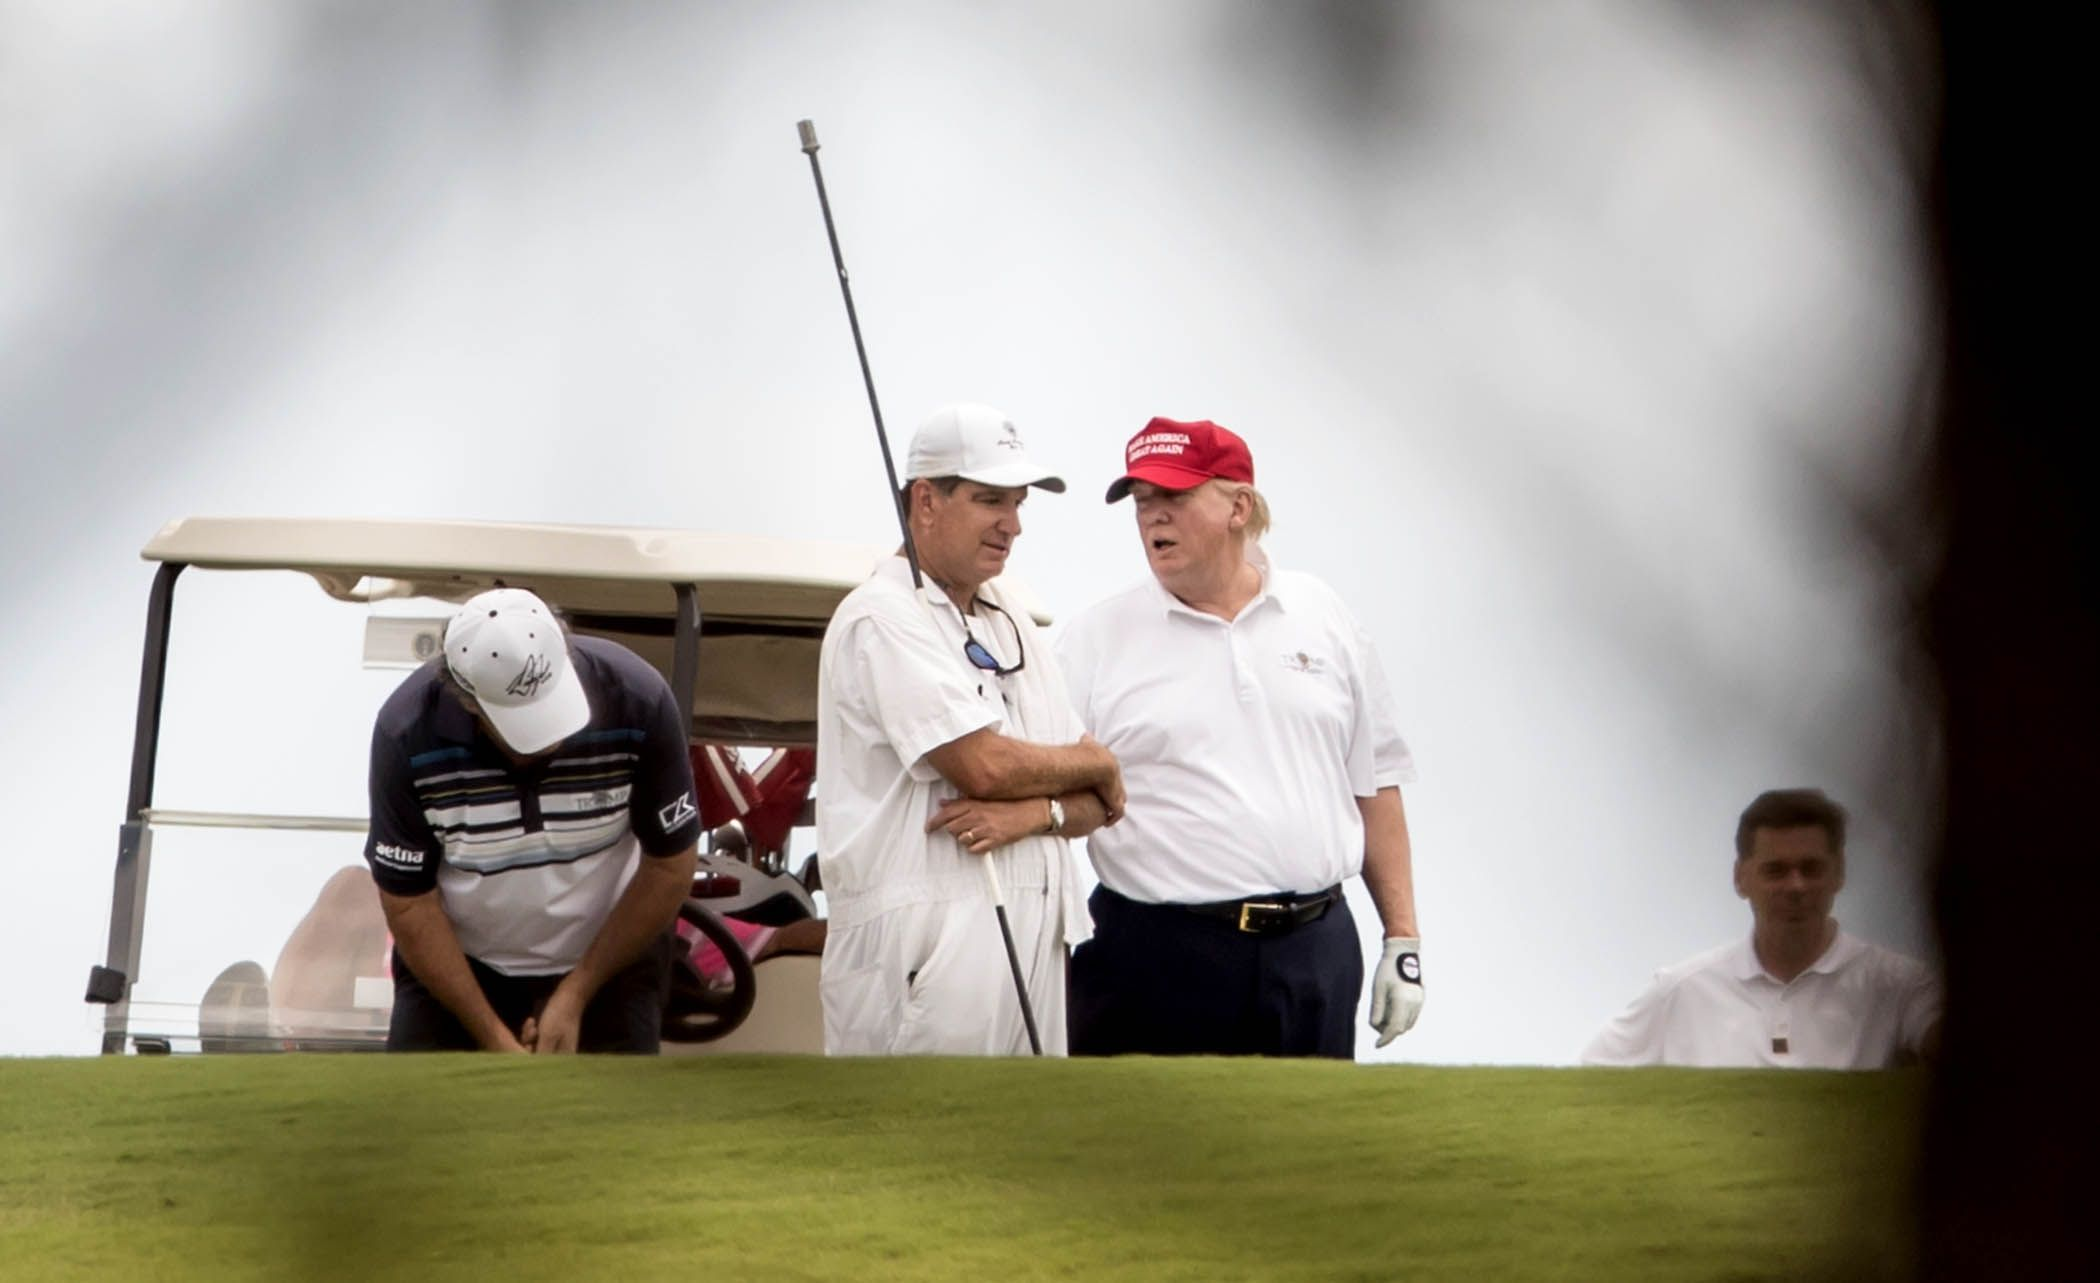 Golf - La Maison Blanche «gonfle» les performances au golf de Donald Trump